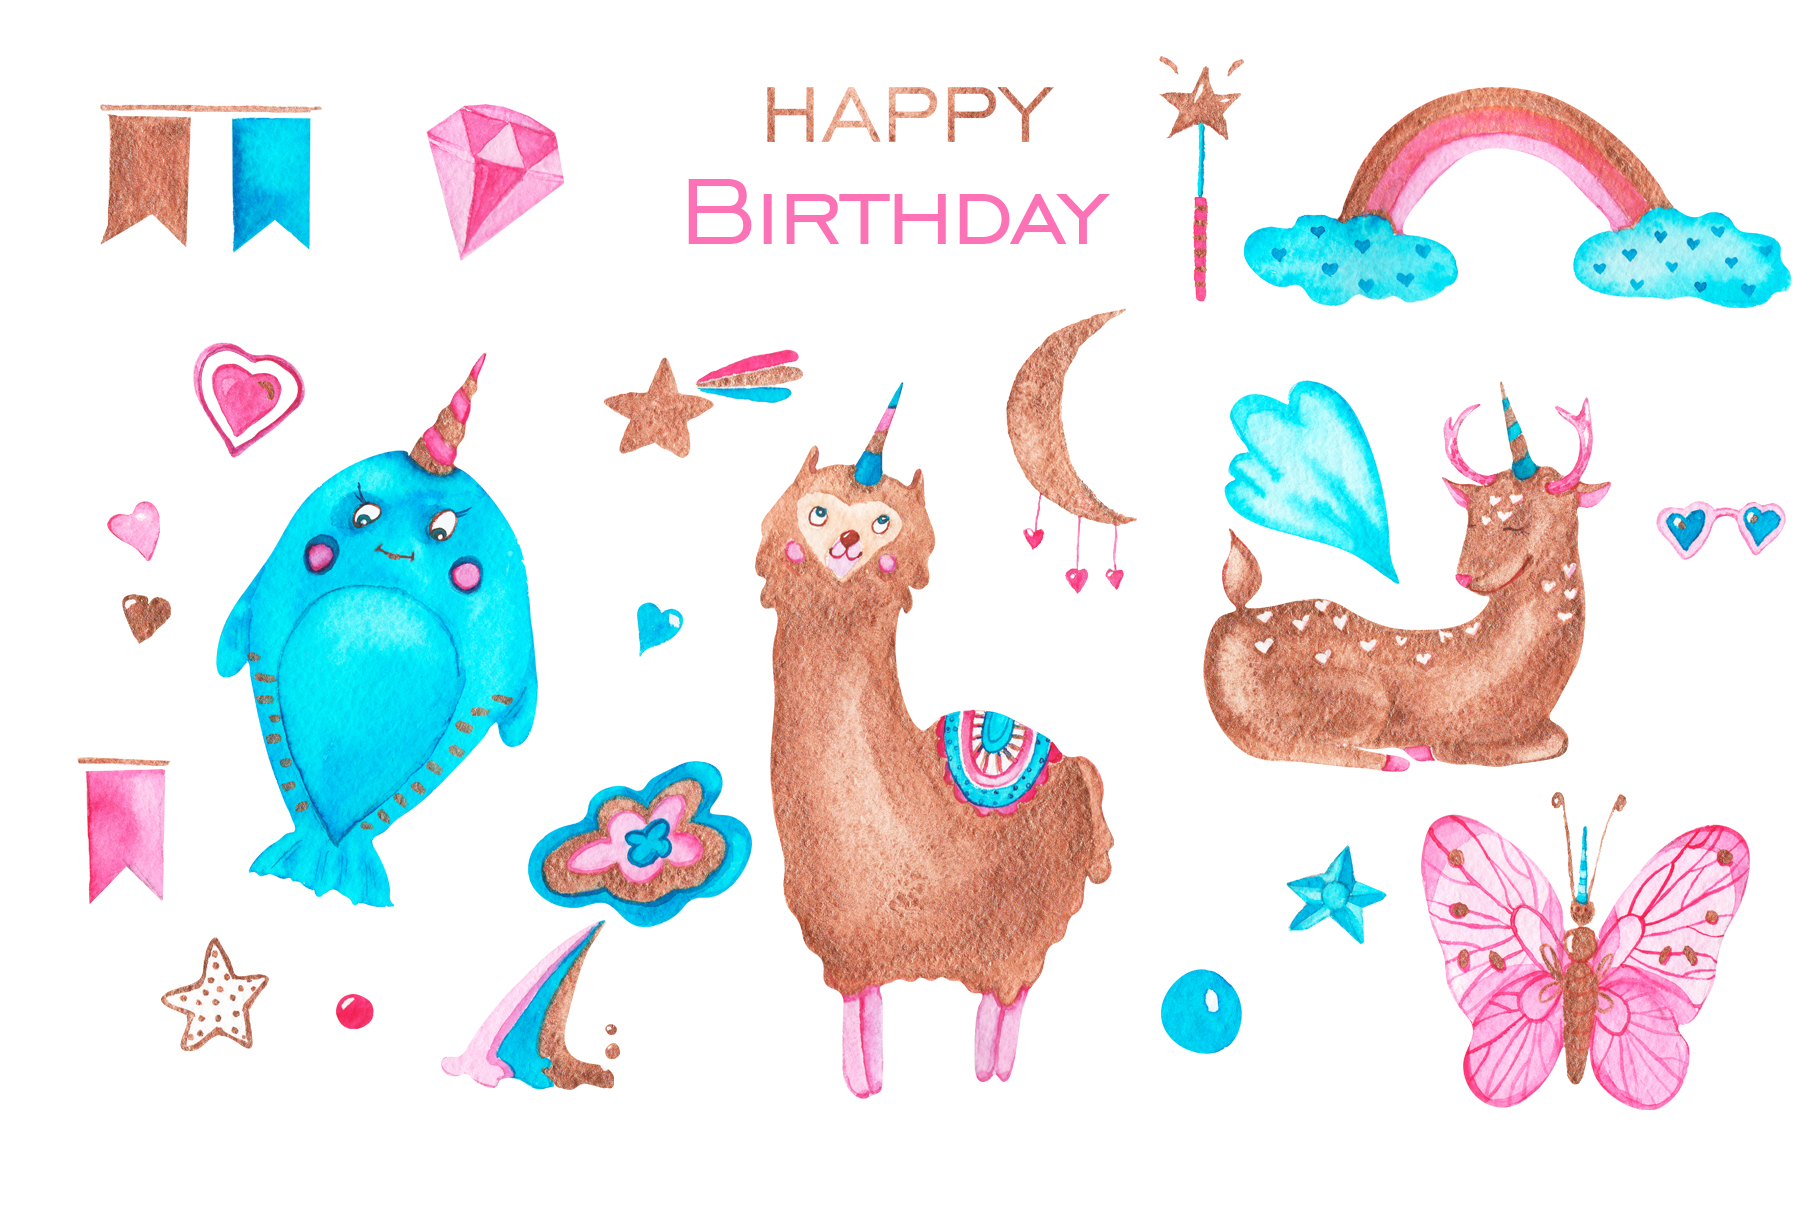 Happy birthday with unicorns example image 2